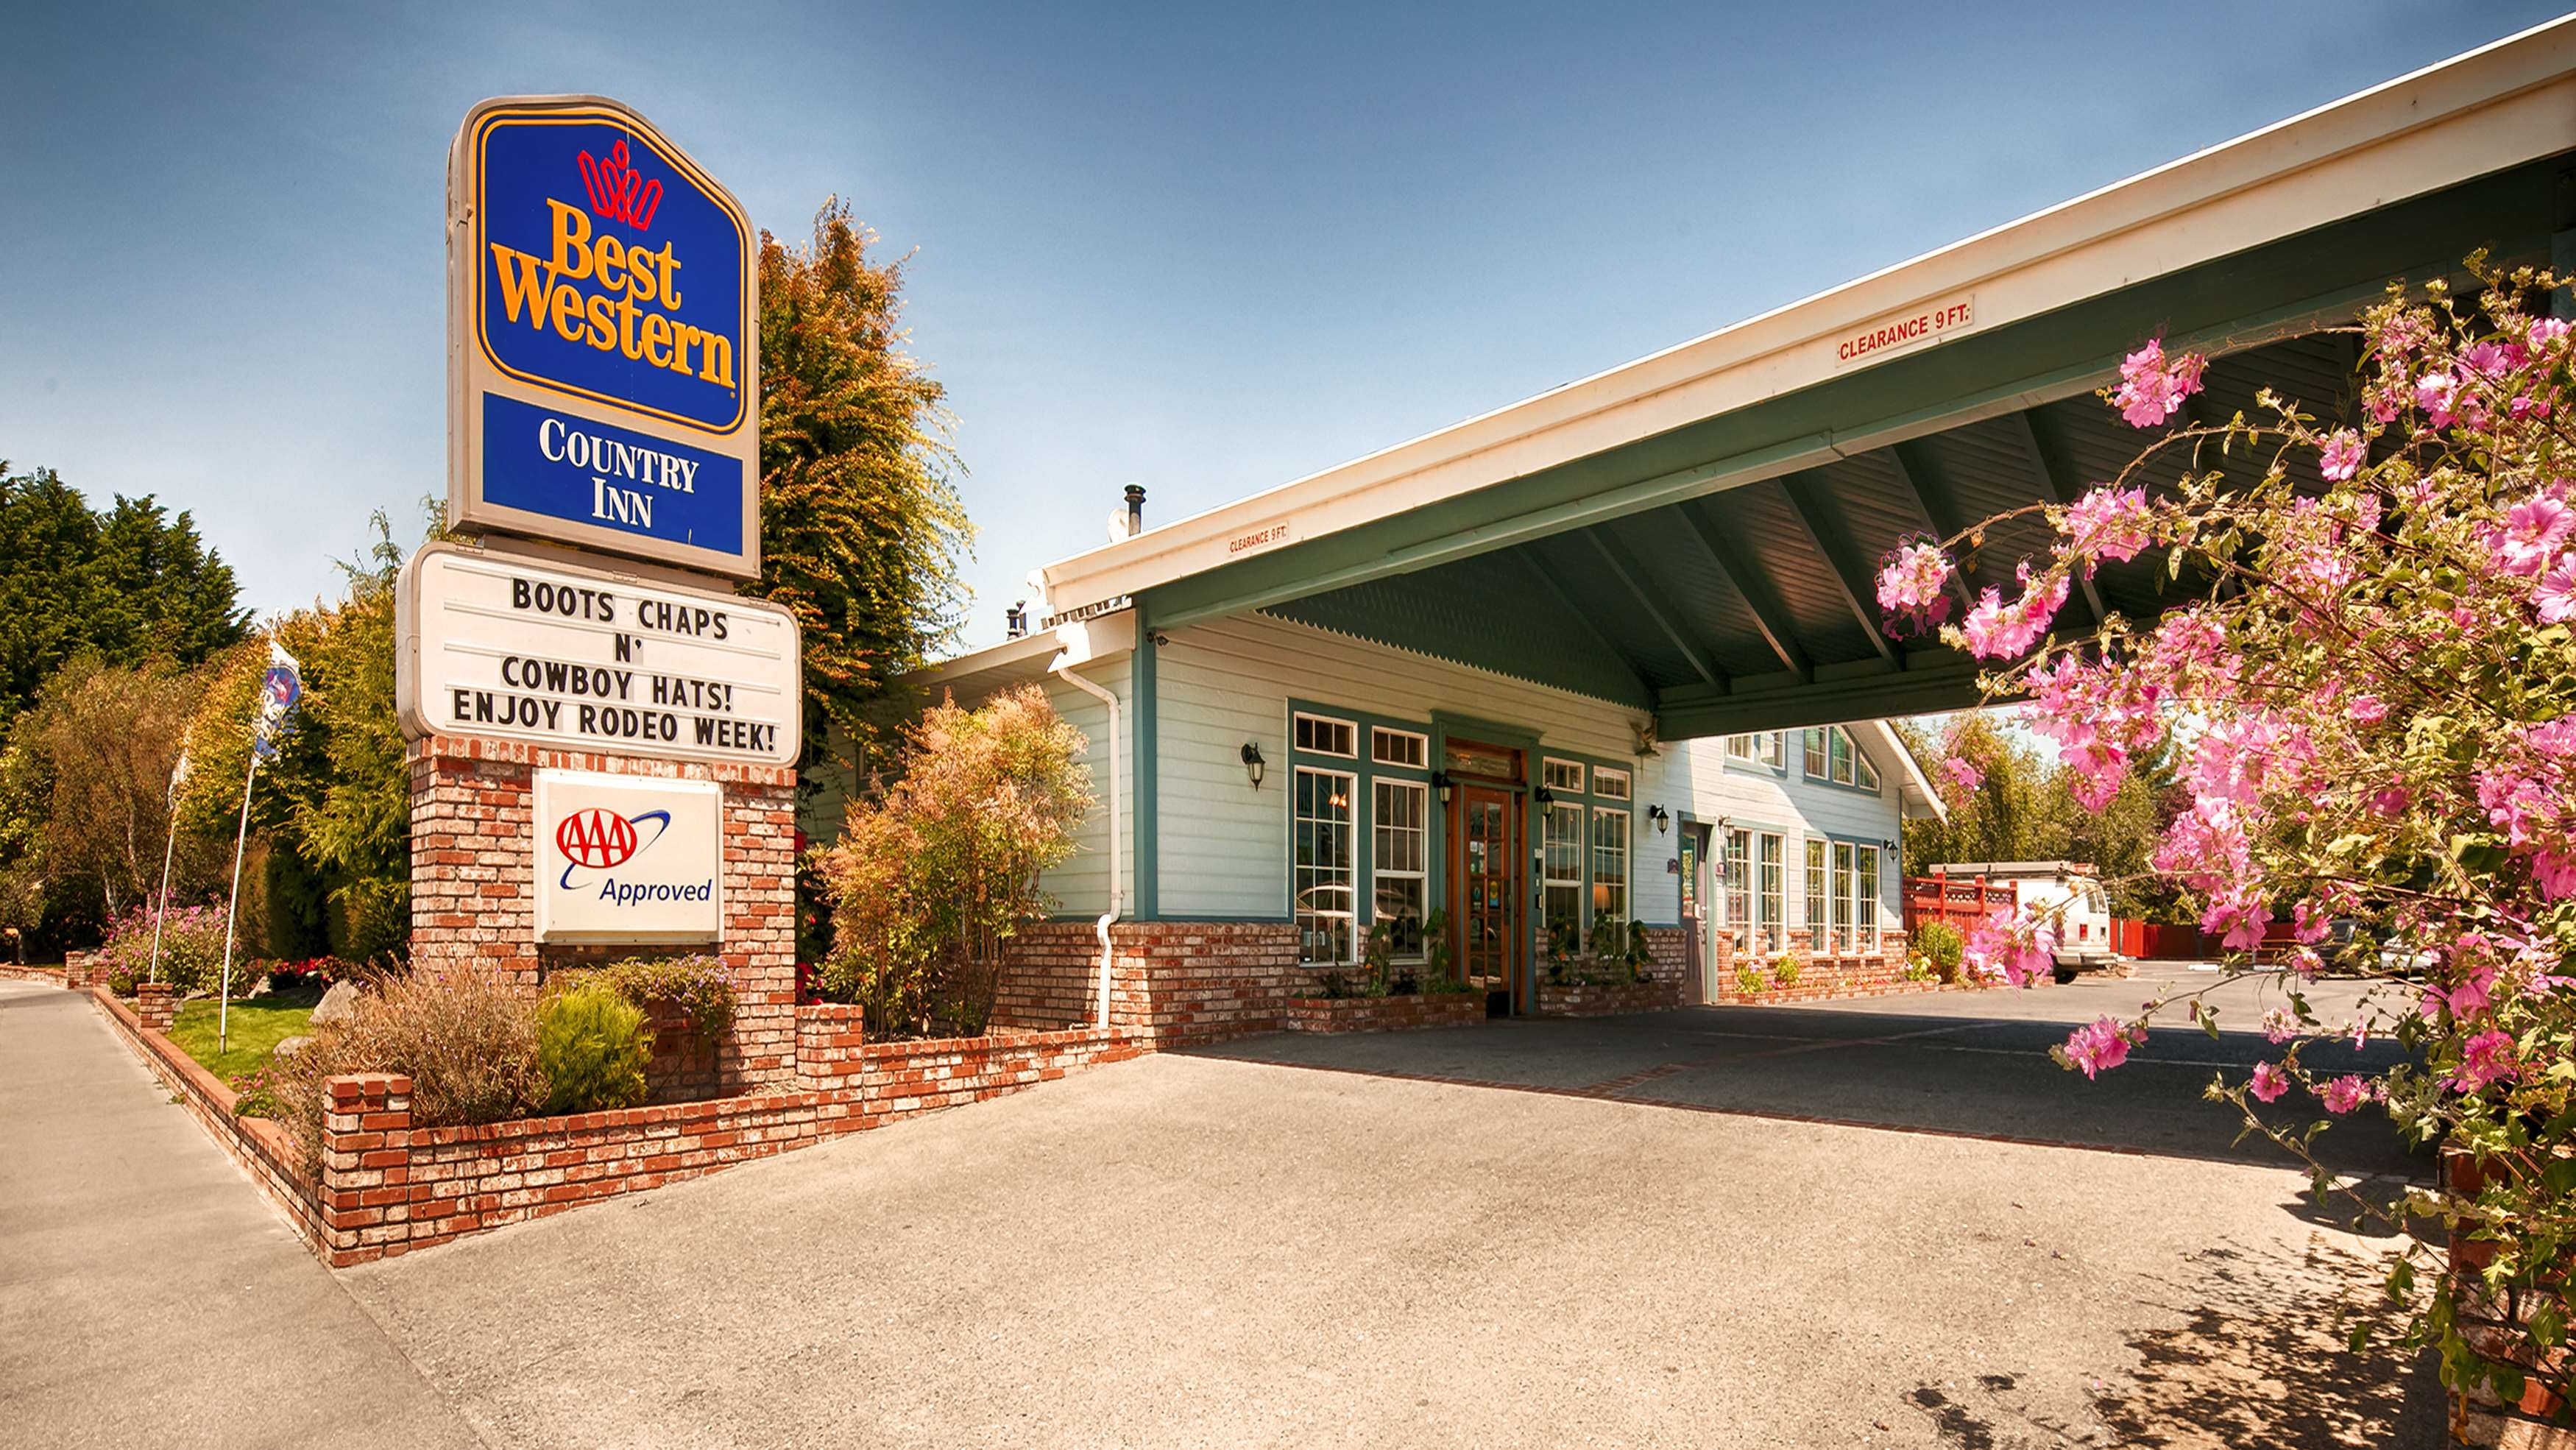 Fortuna Ca Hotels Motels